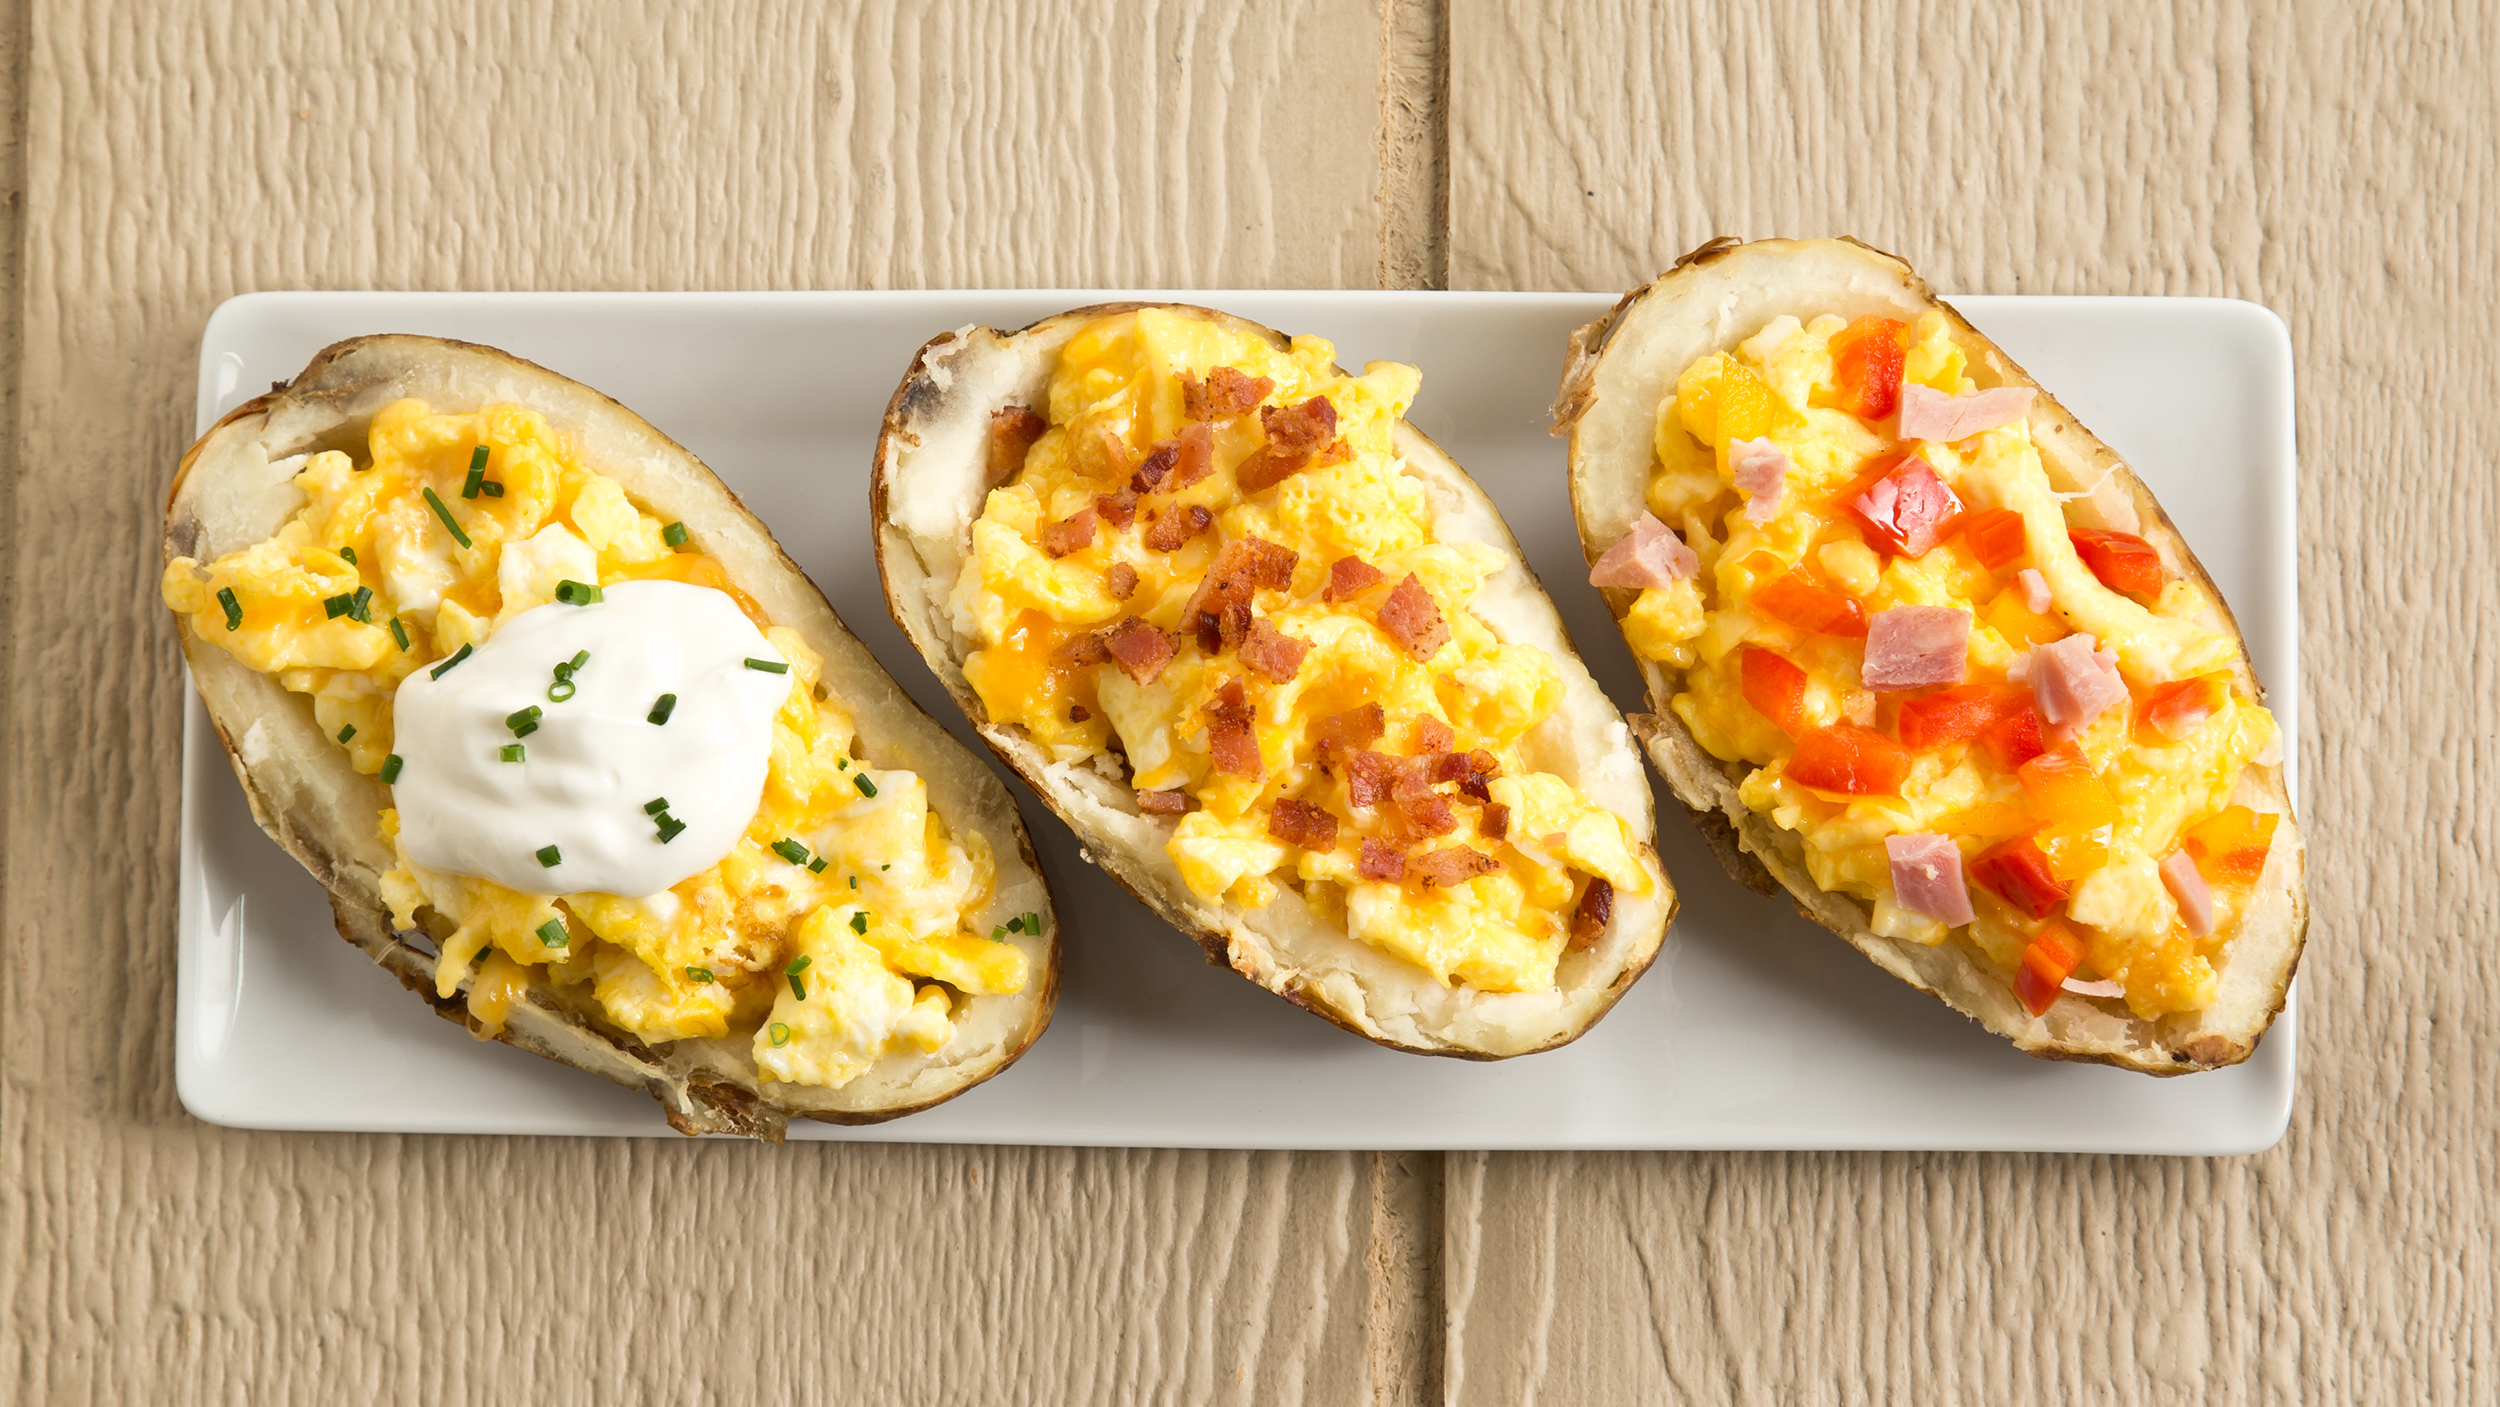 Breakfast Baked Potato Boats Stuffed With Cheesy Eggs